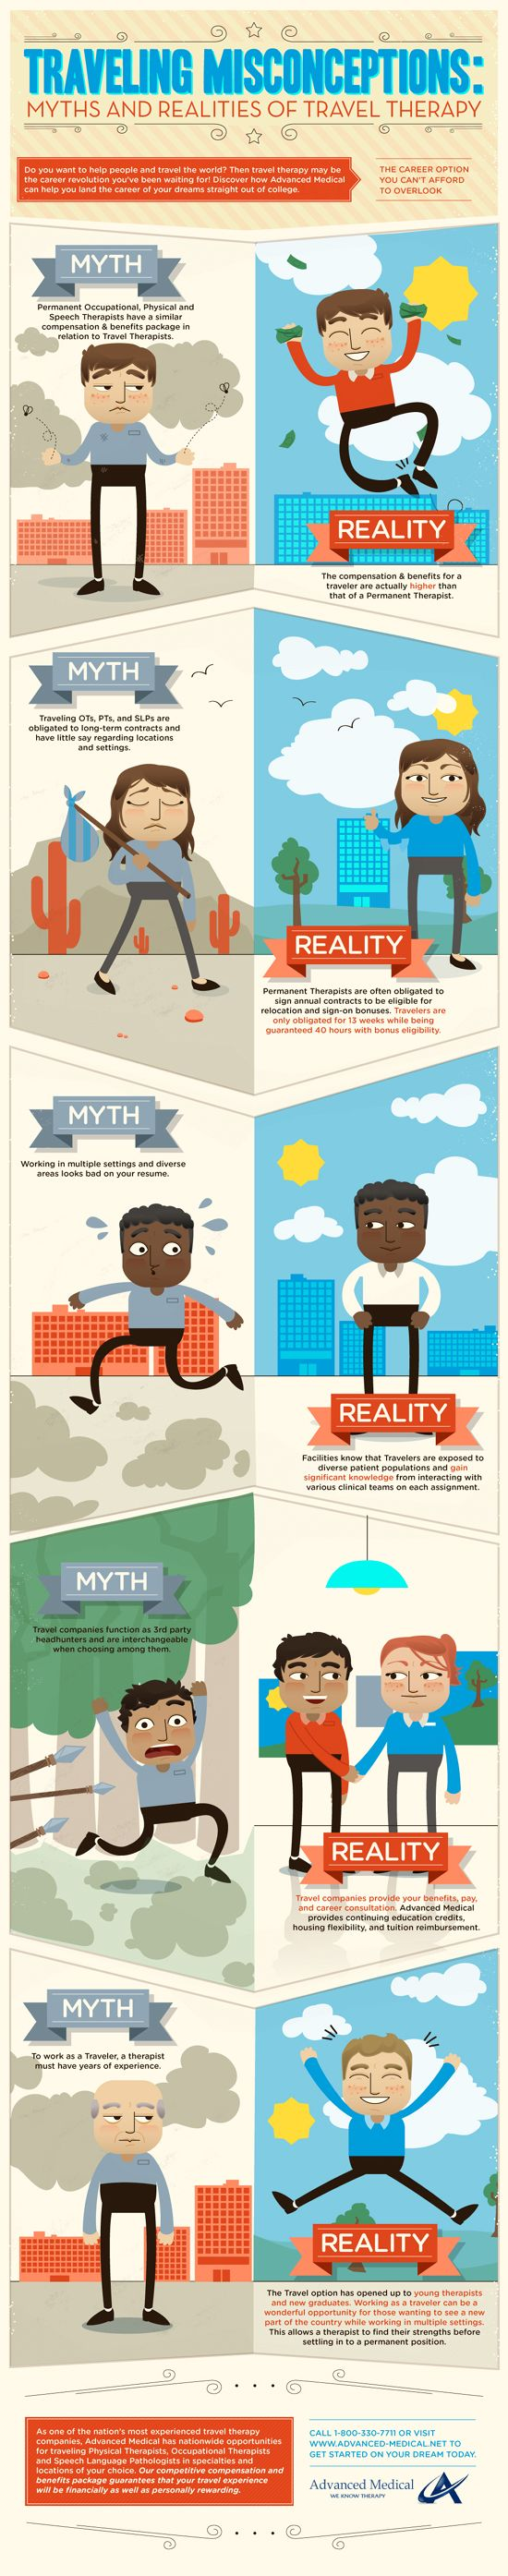 Career in physical therapy - Myths And Realities Of A Travel Therapy Job Infographic Physical Therapyoccupational Therapycareer